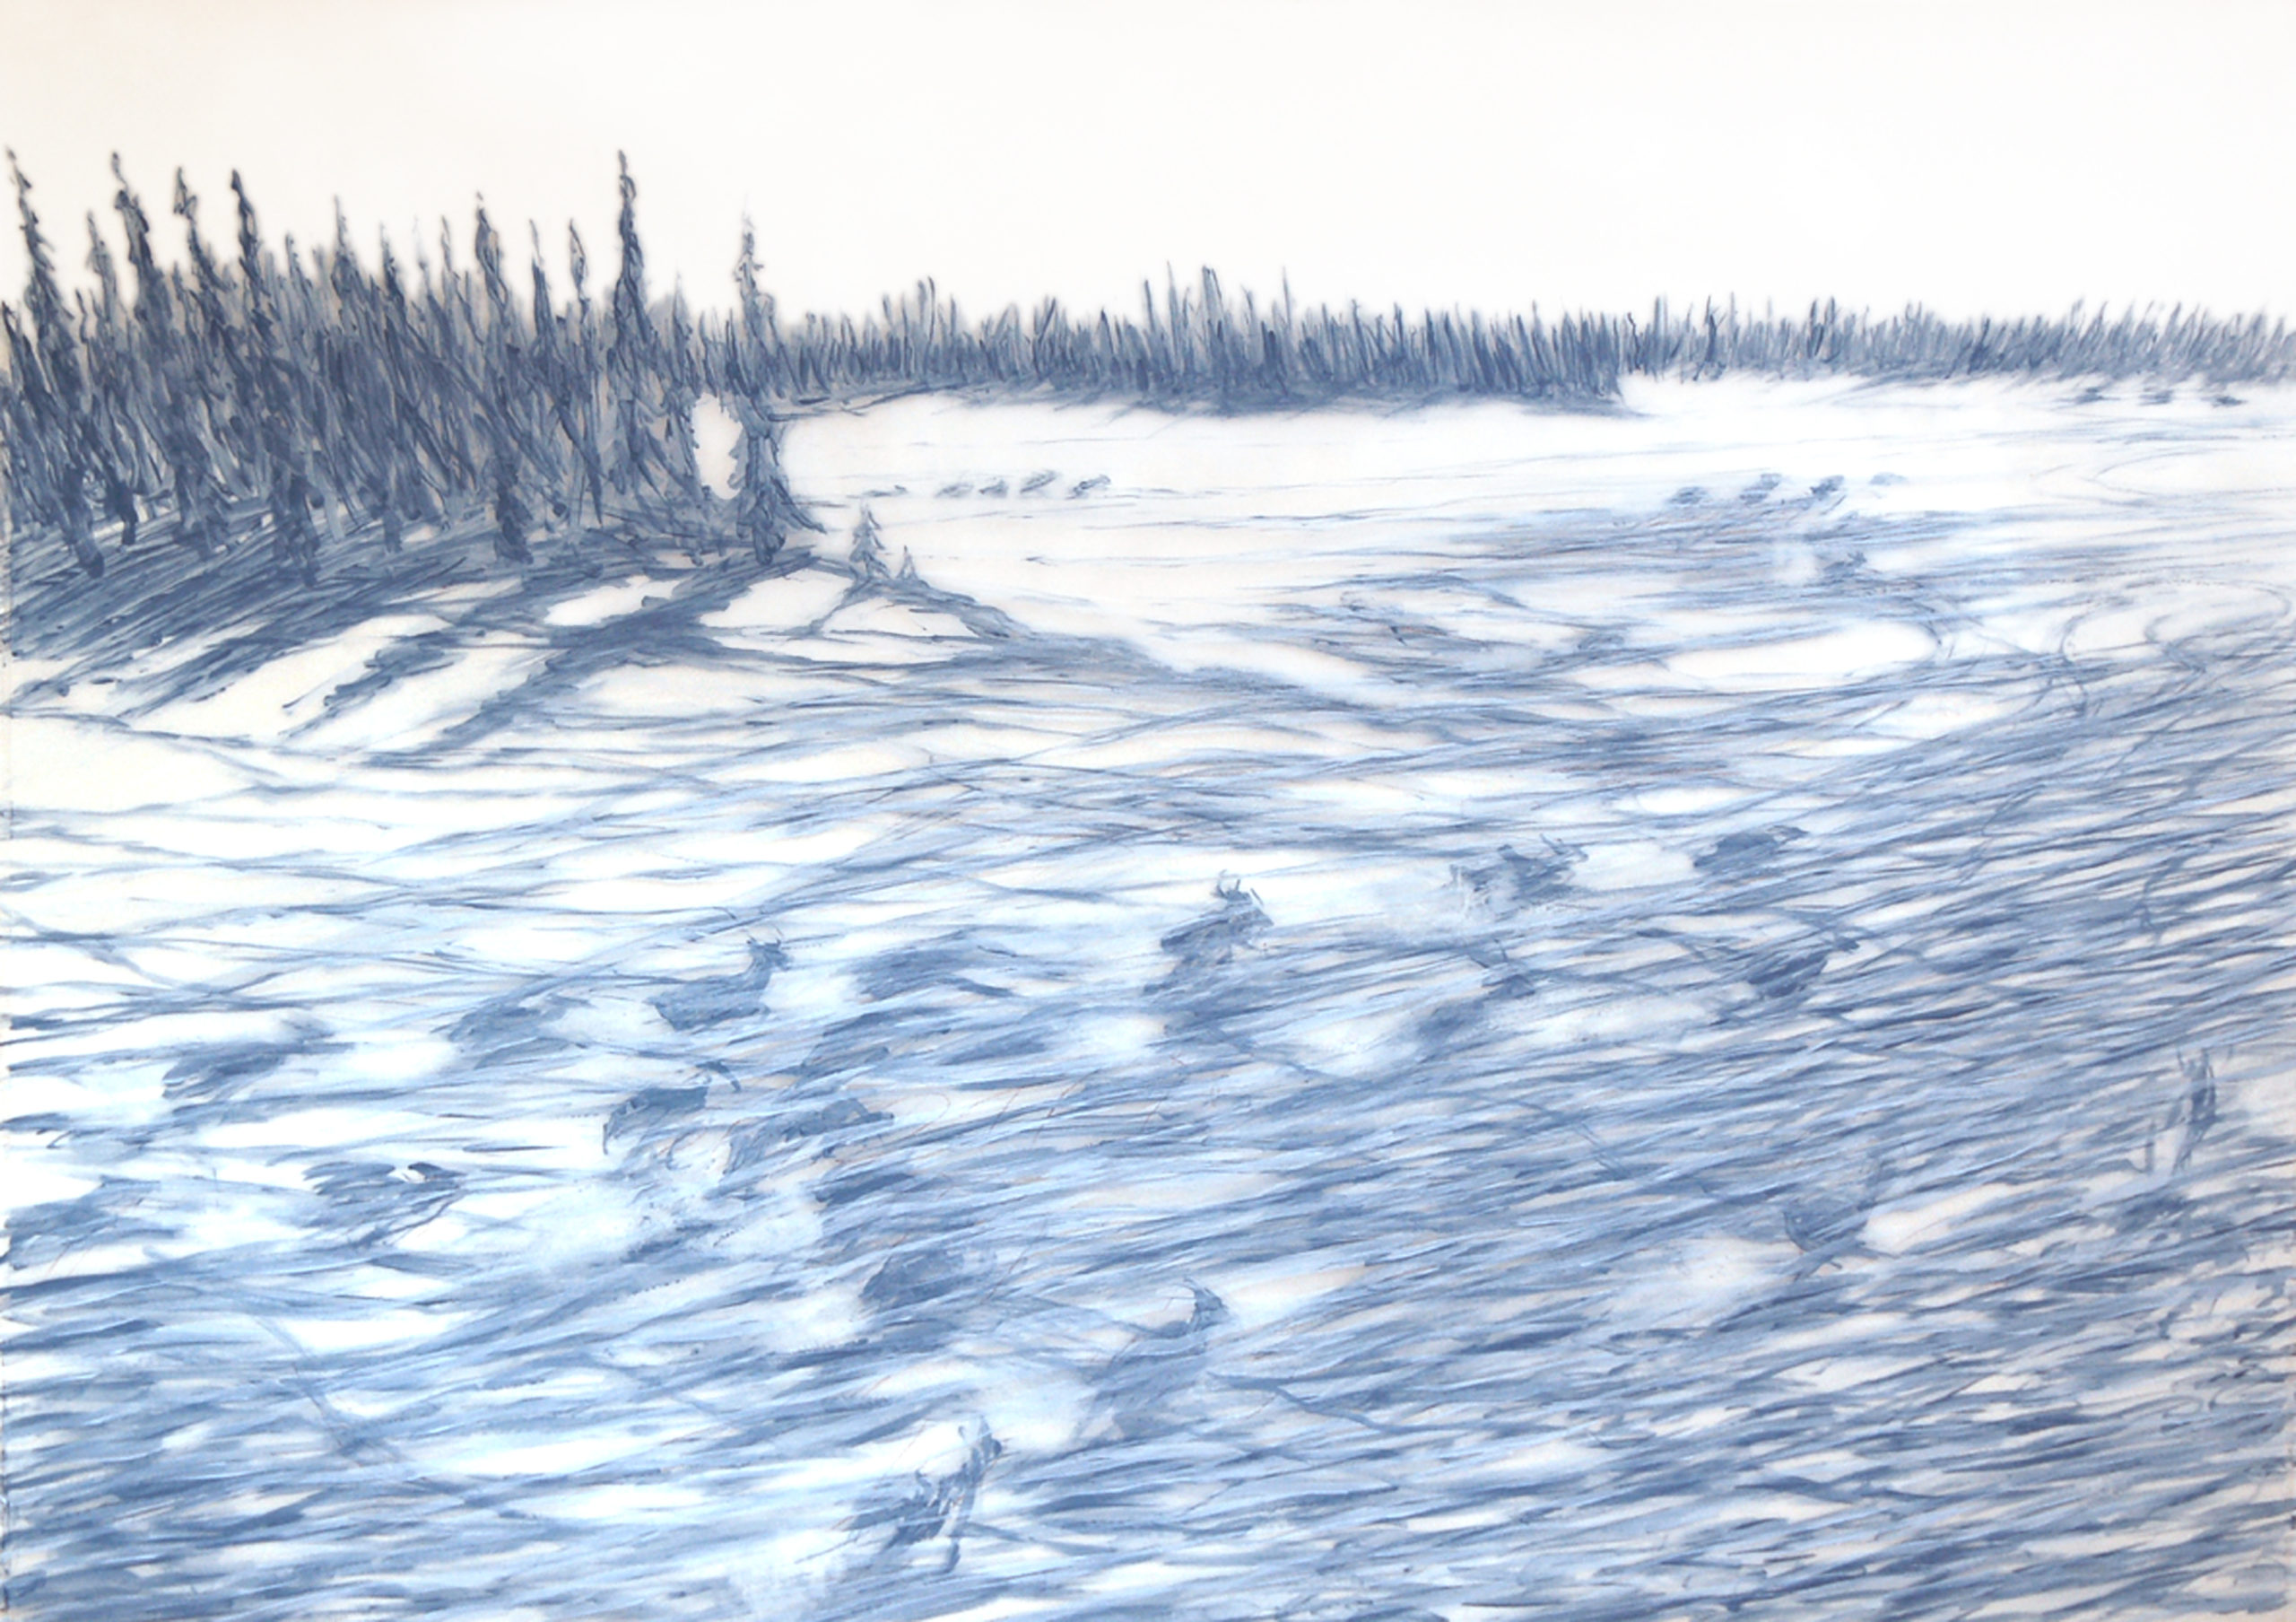 caribou trails 30x40 inches 2006 acrylic on mylar